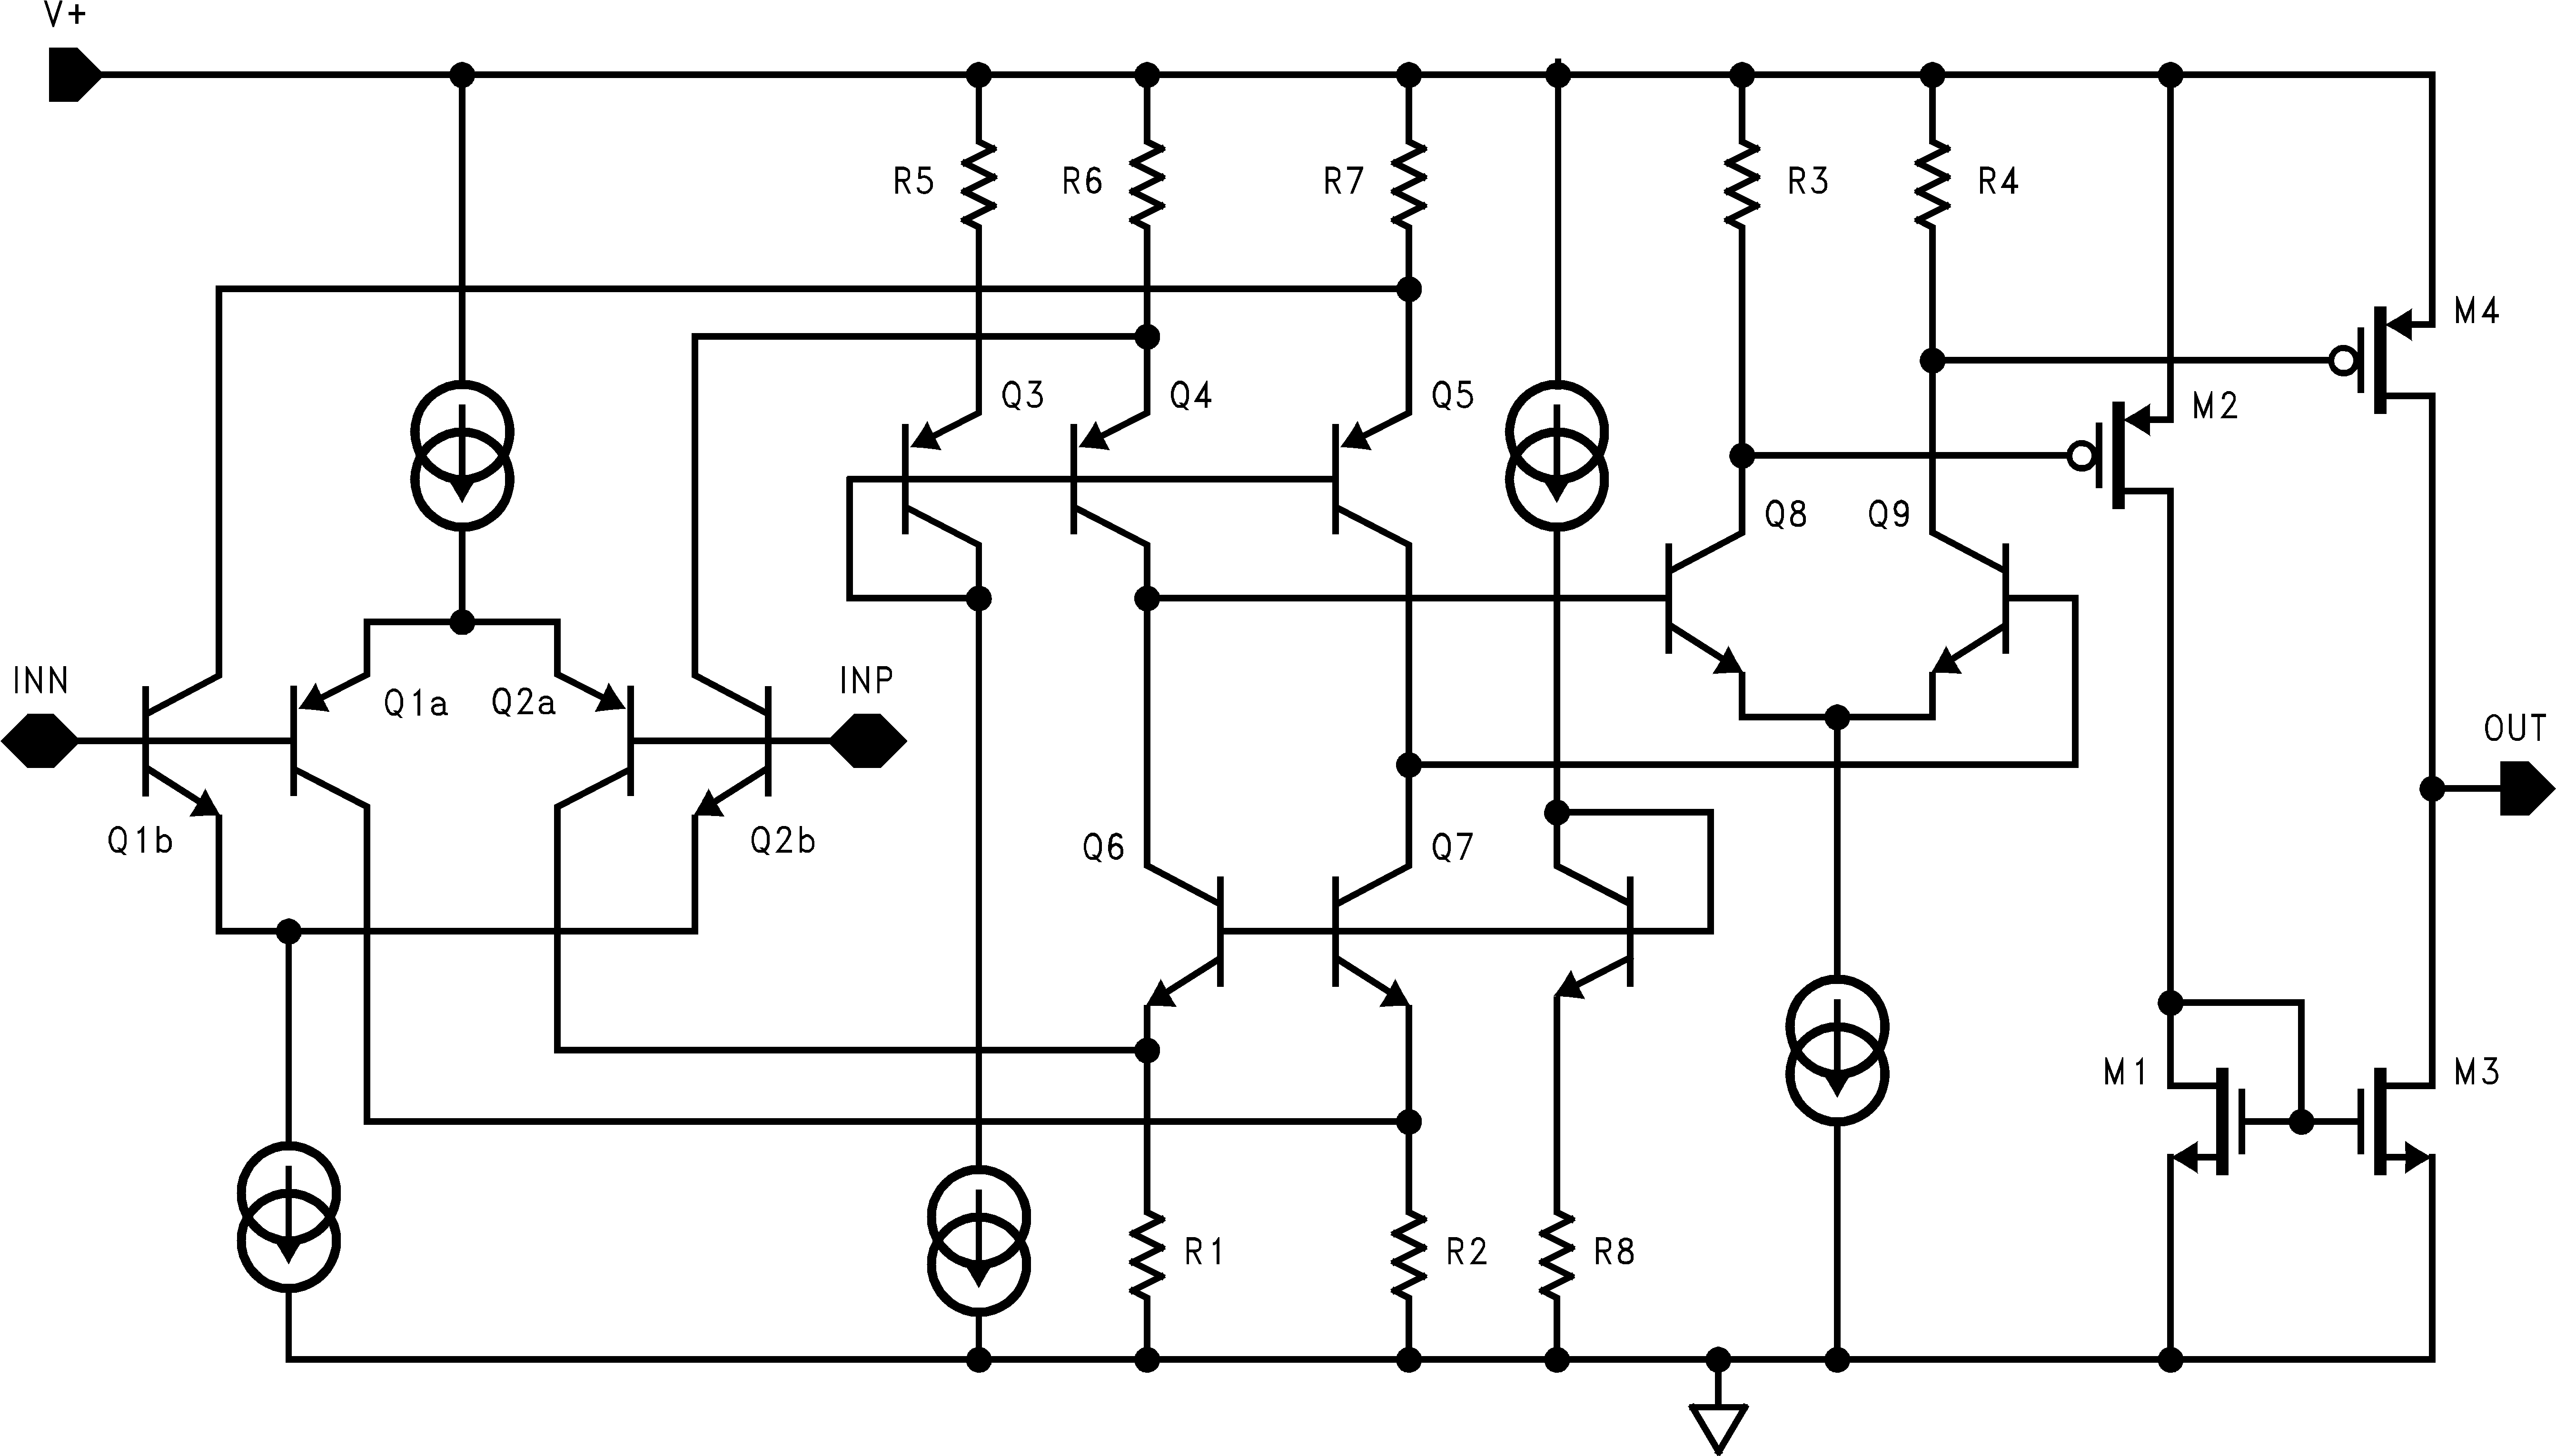 Lmv7239 Q1 75 Nsec Ultra Low Pwr Voltage Rail To Input Circuit Shown In The Following Schematic Diagram Click Enlarge Expand Contents